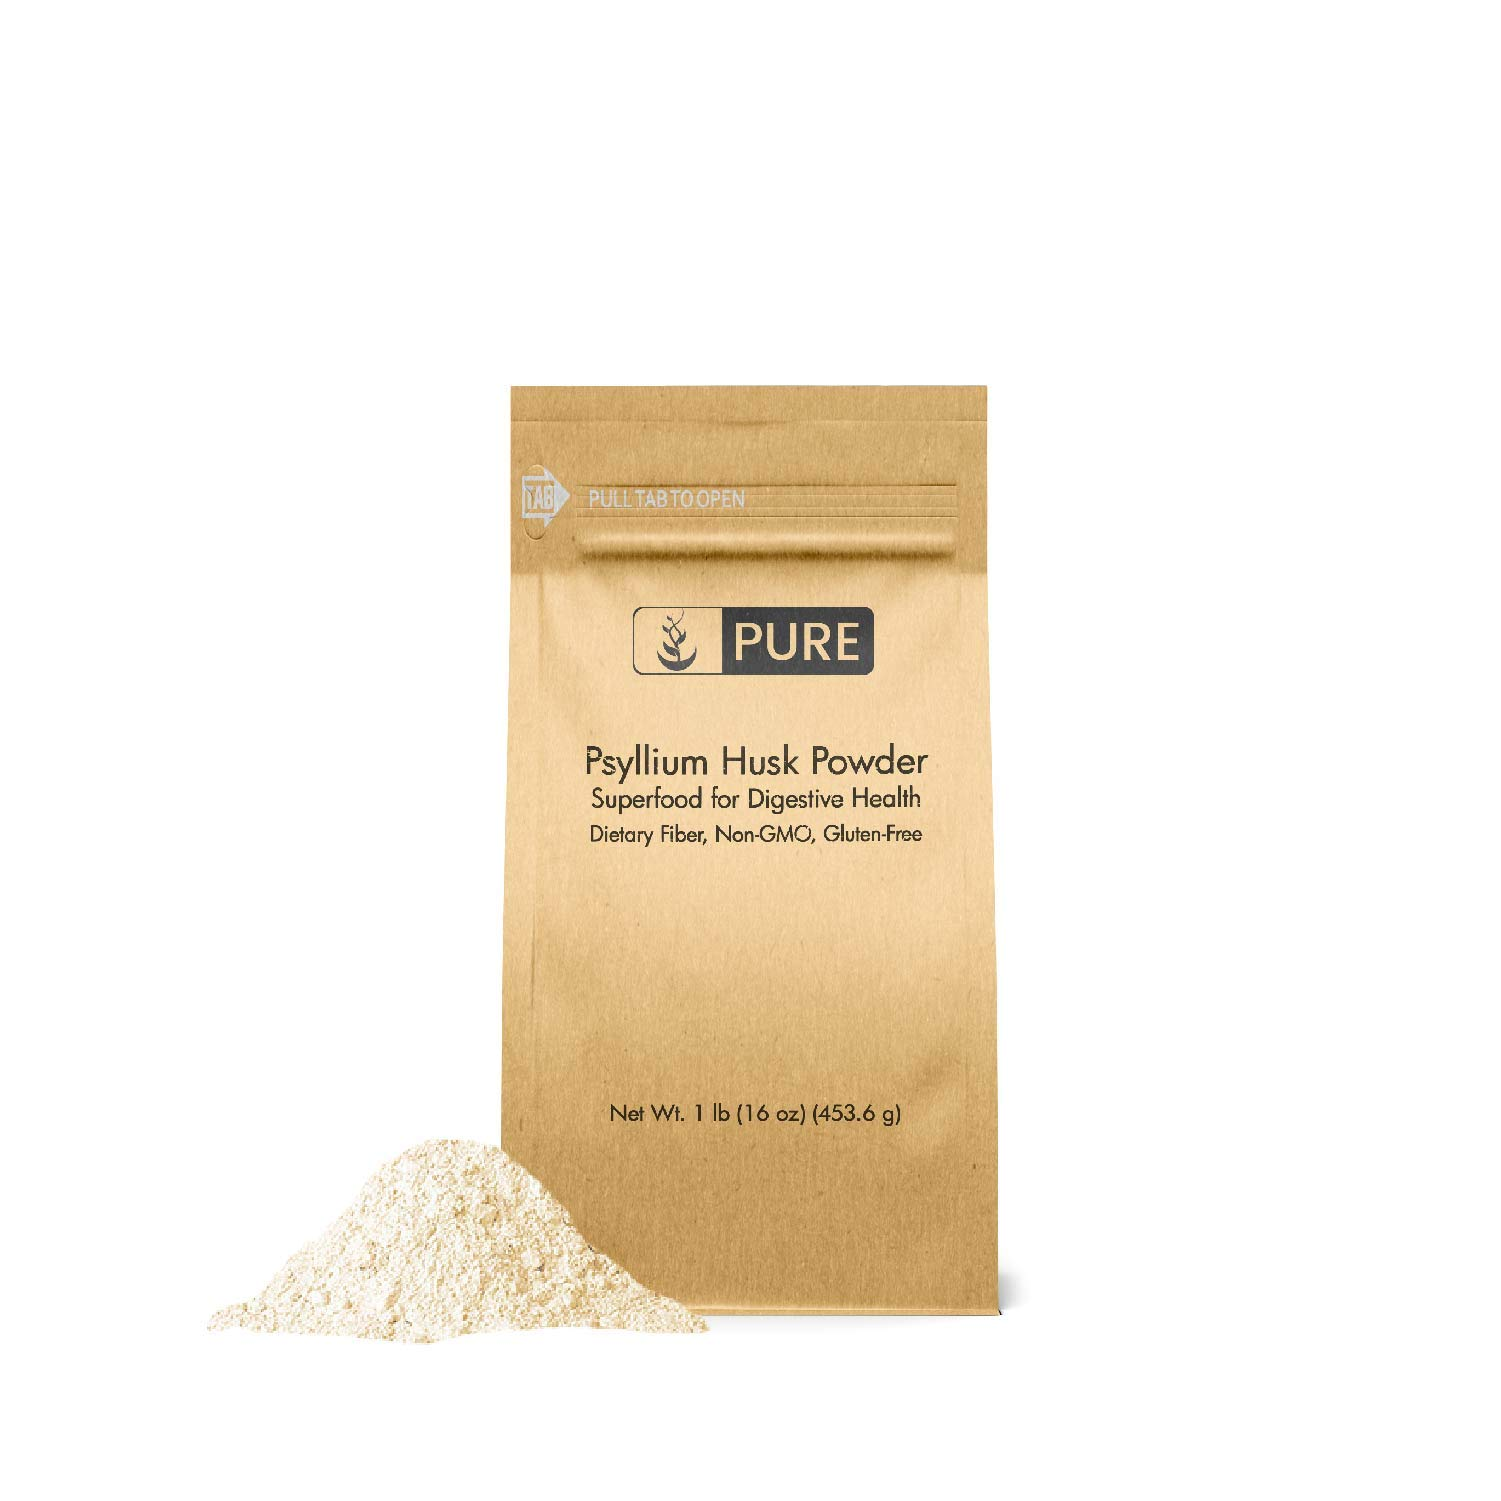 Psyllium Husk Powder (1 lb.) by Pure Organic Ingredients, Fiber Powder Supplement, Additive for Gluten-Free Baking by Pure Organic Ingredients